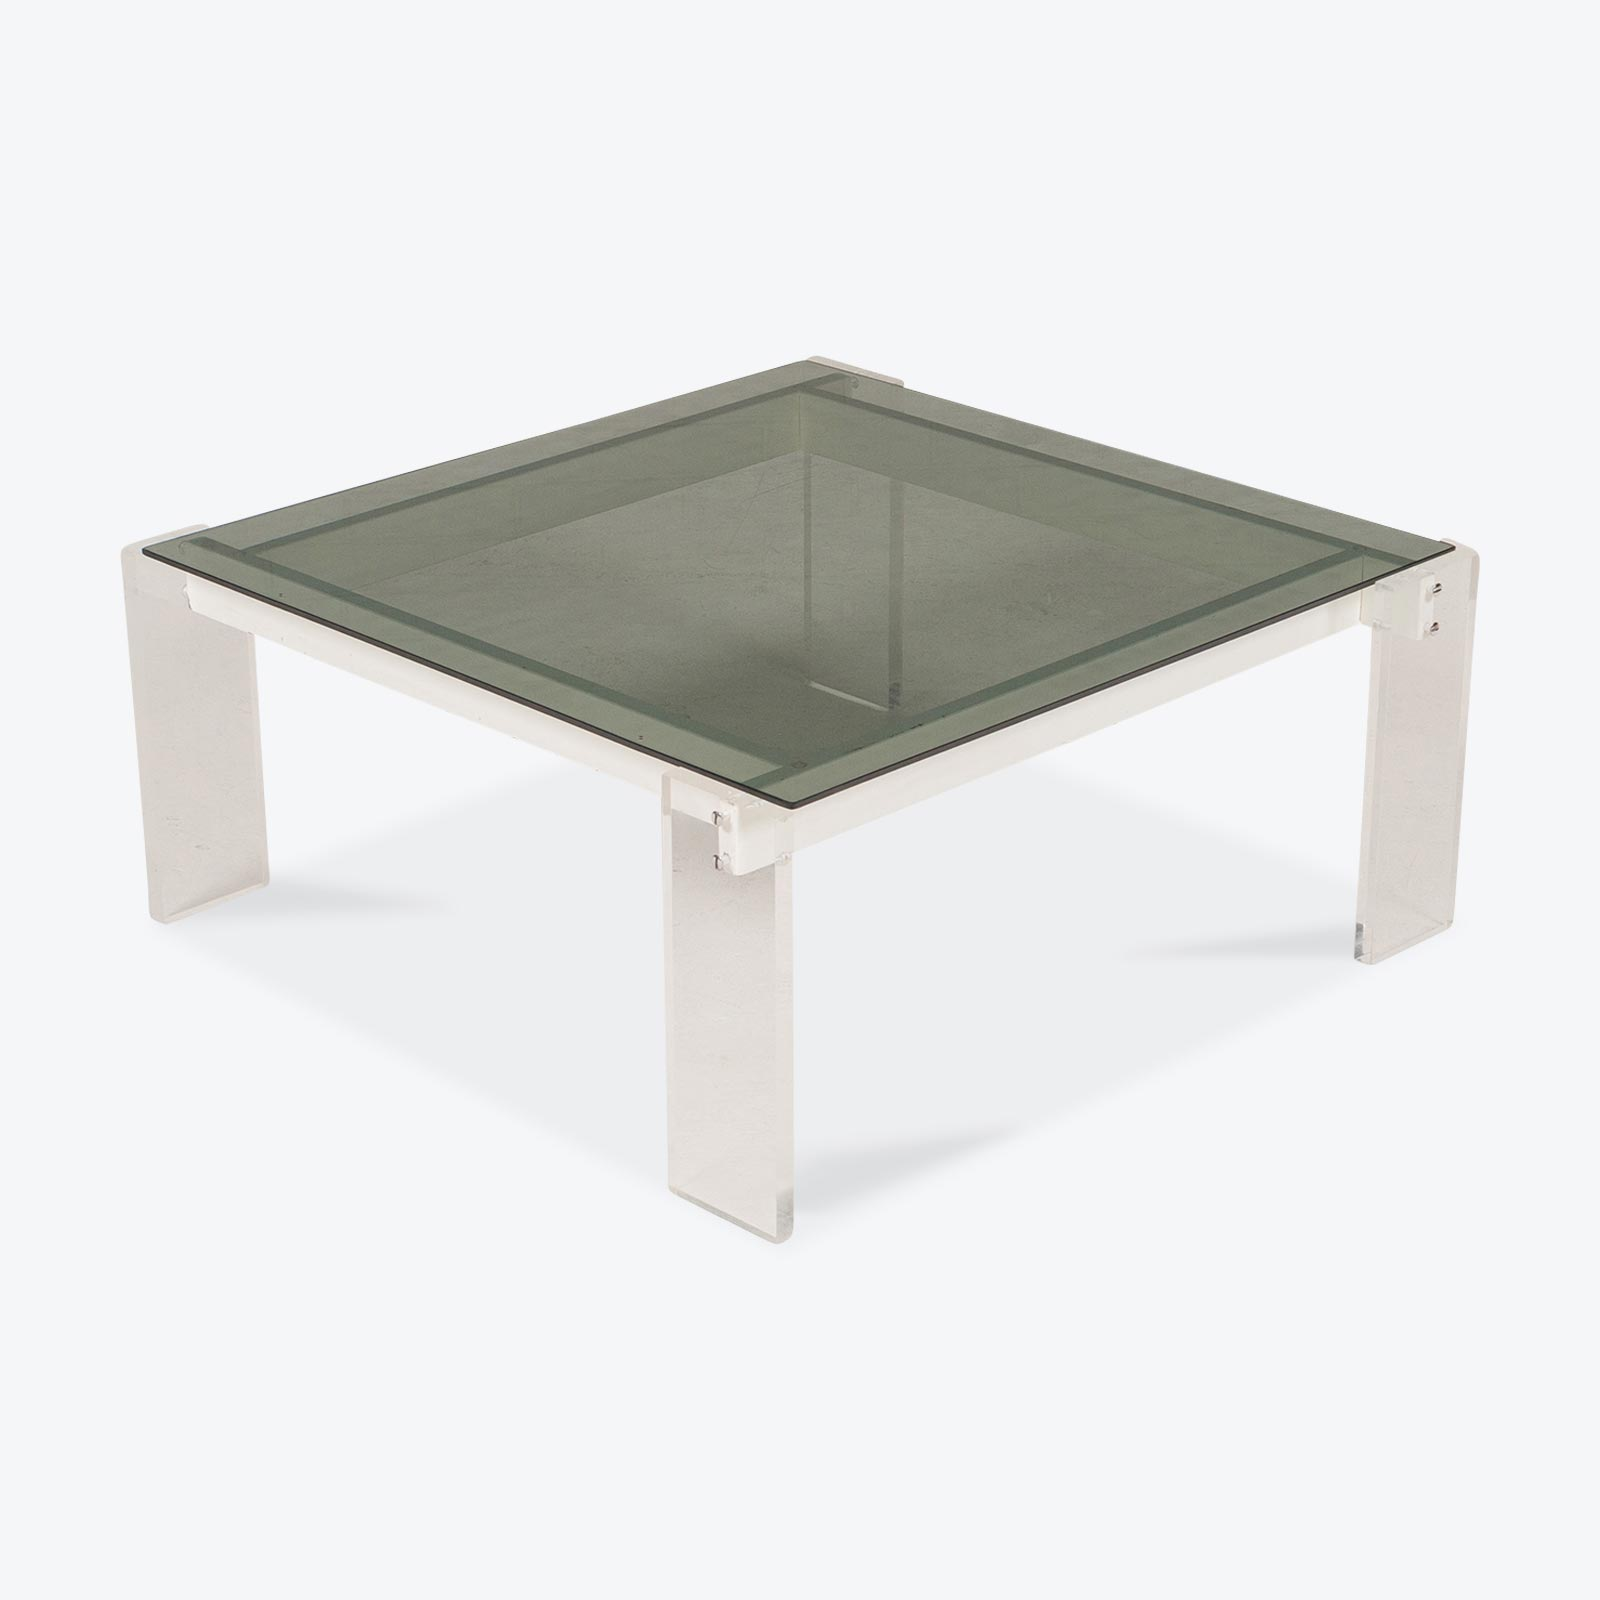 square-coffee-table-in-perspex-and-smoked-glass-1960s-netherlands-01